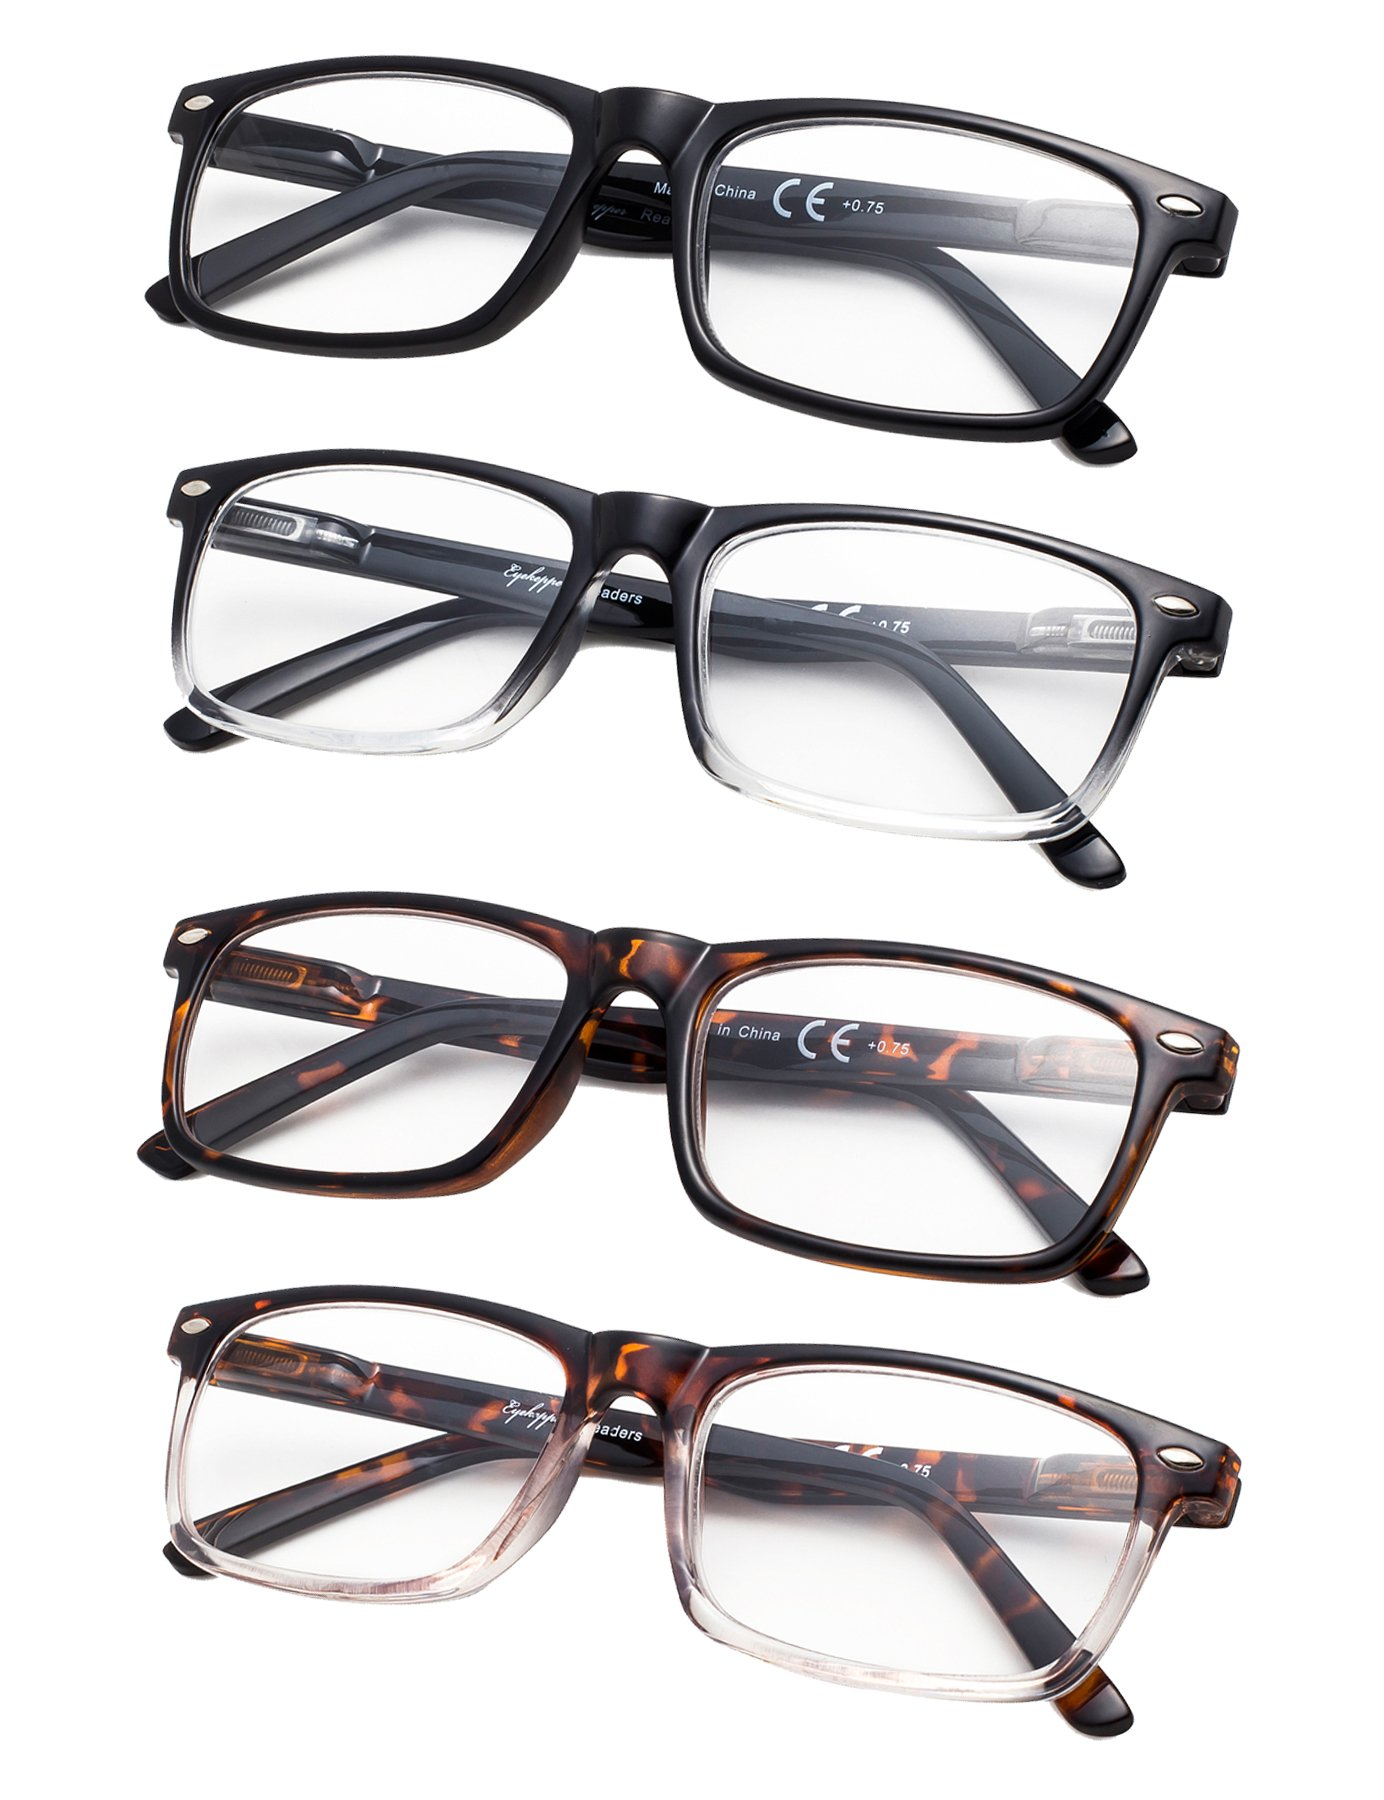 4-Pack Vintage Style Reading Glasses with Spring Hinges +1.75